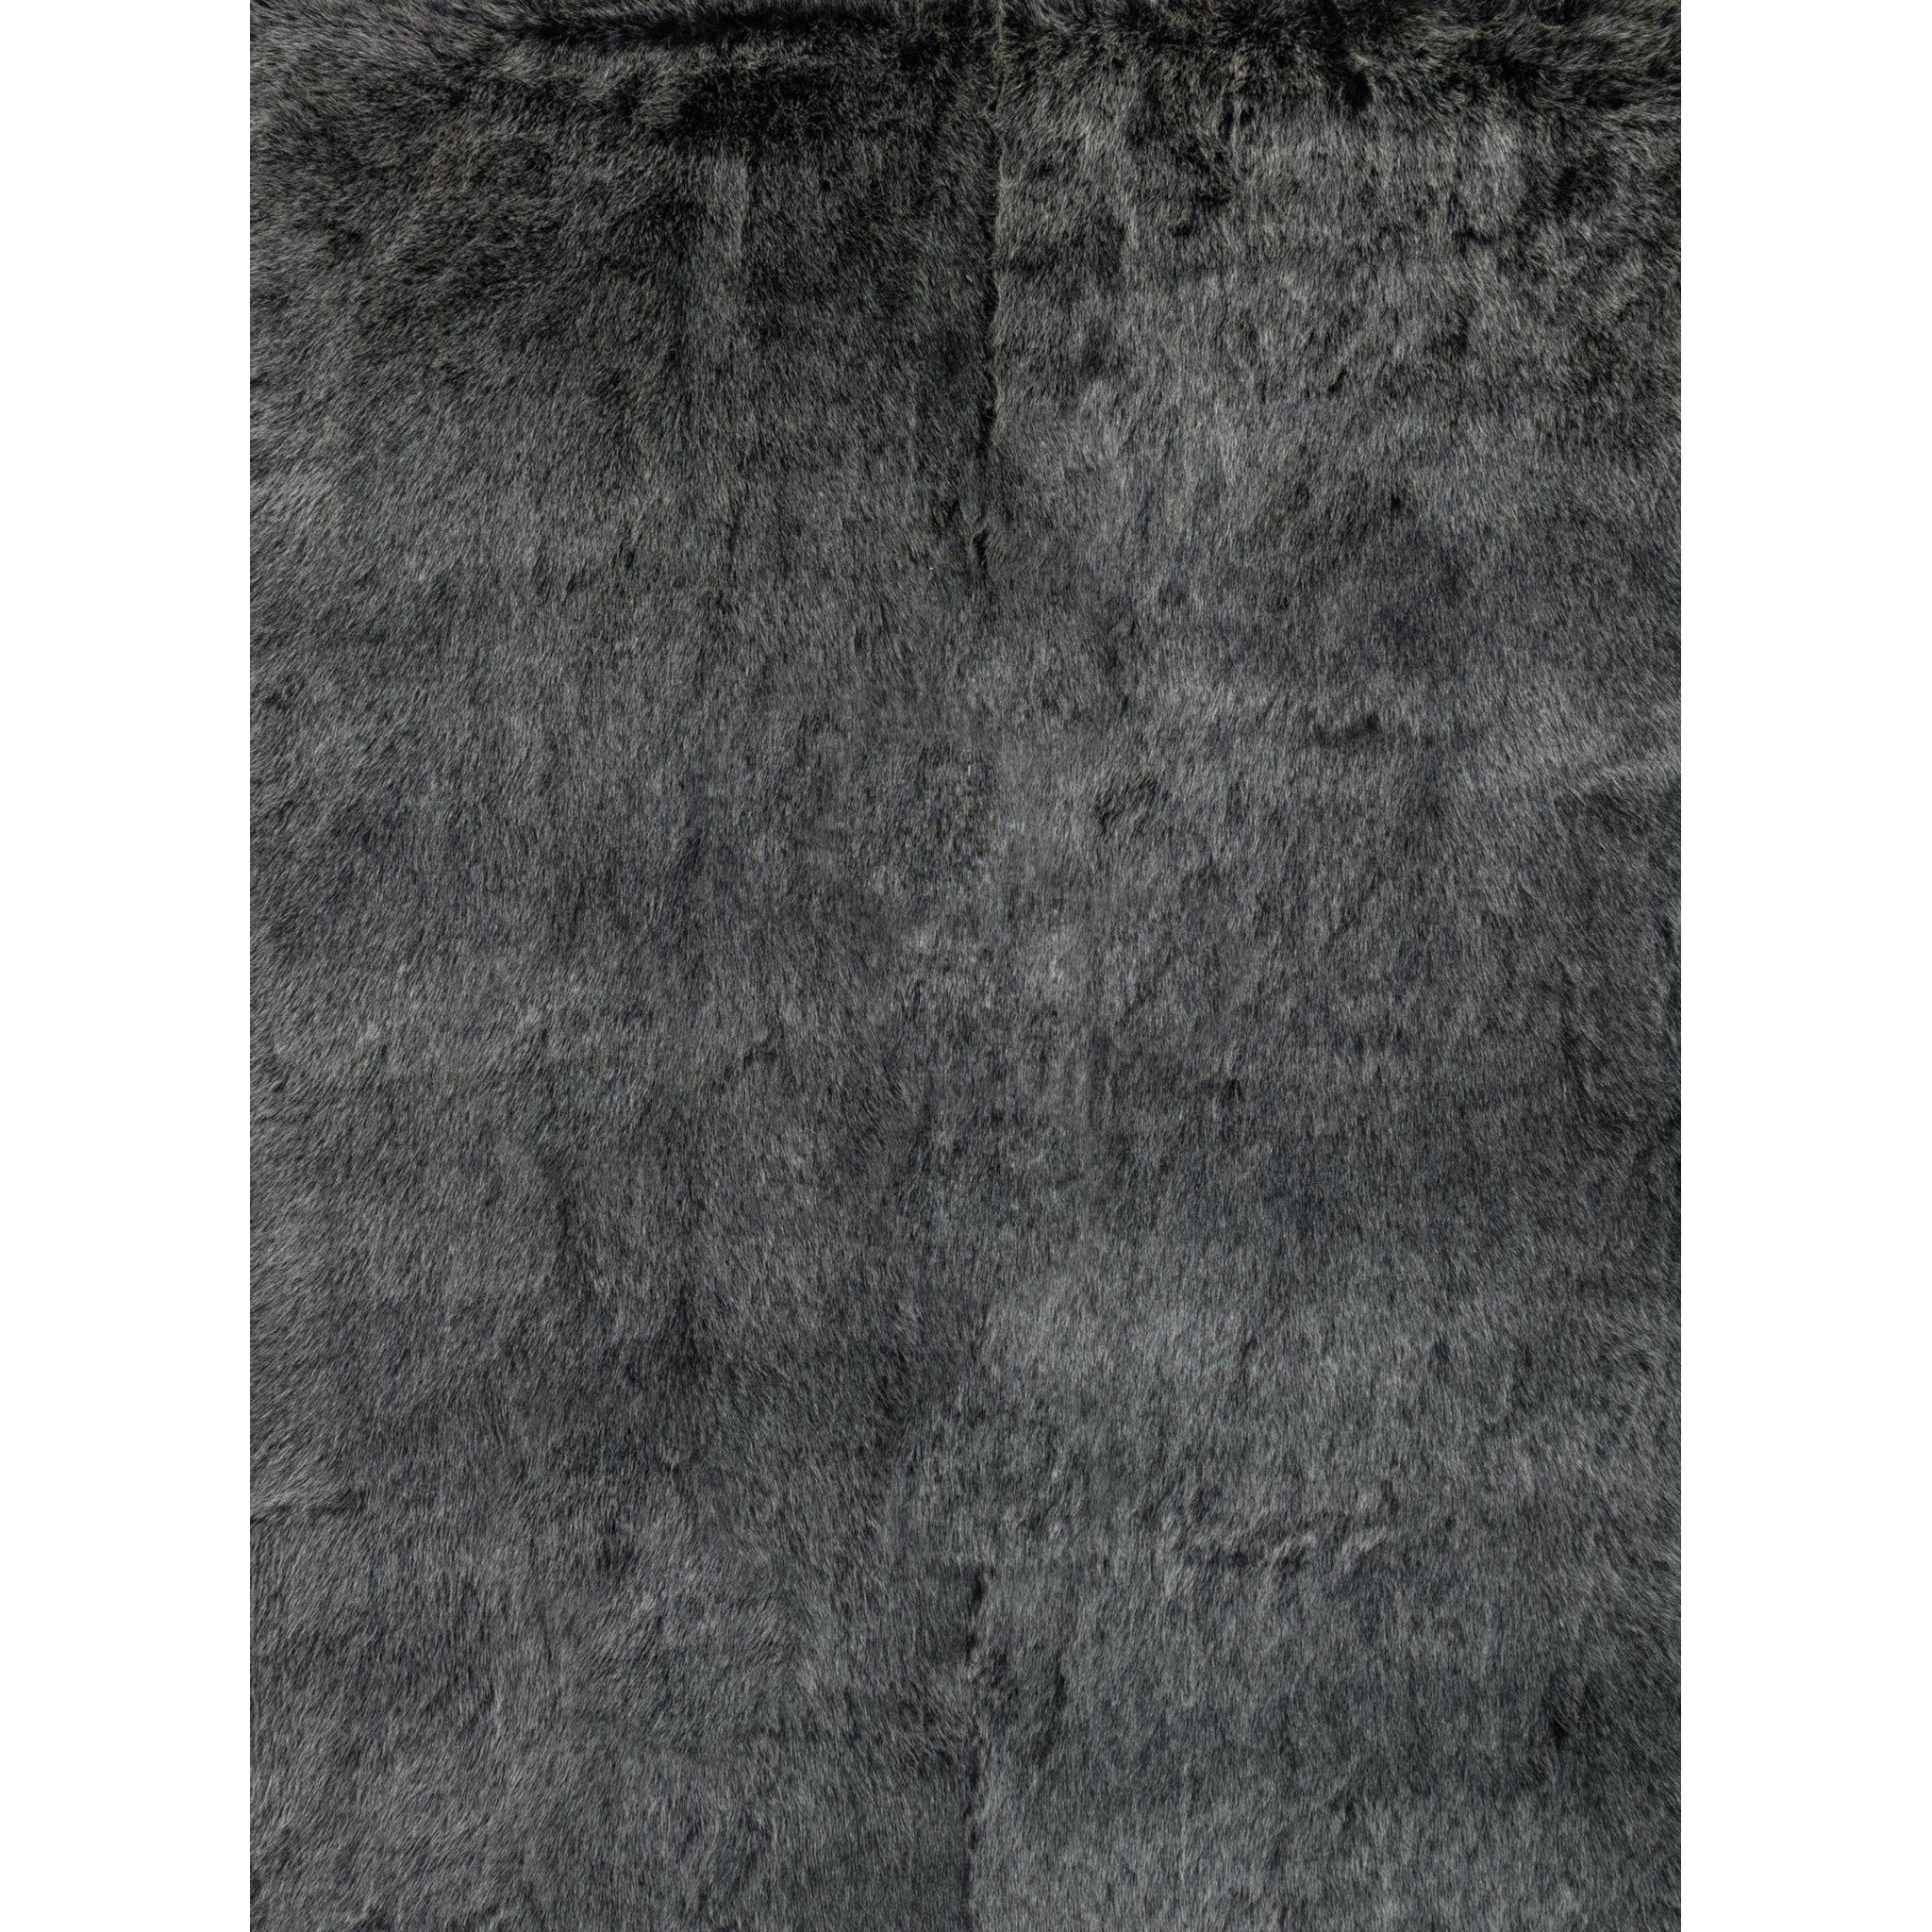 Finley 10' X 13' Area Rug by Loloi Rugs at Sprintz Furniture